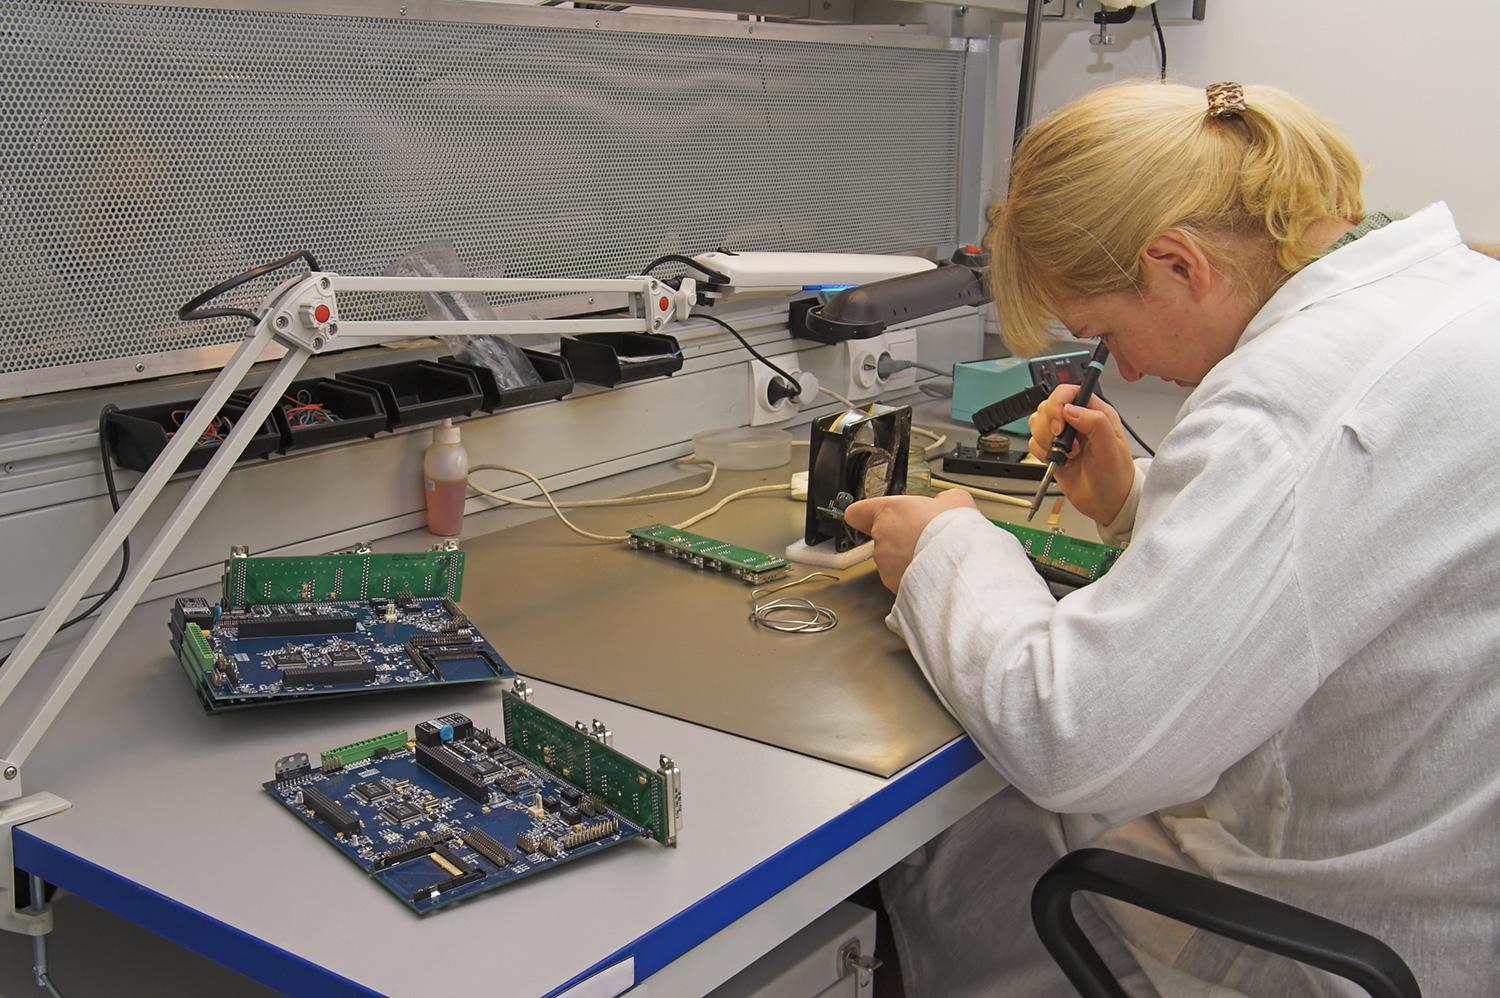 Corporate Services, Inc. is hiring Electronic Assemblers — up to $15.00/hour — apply today!